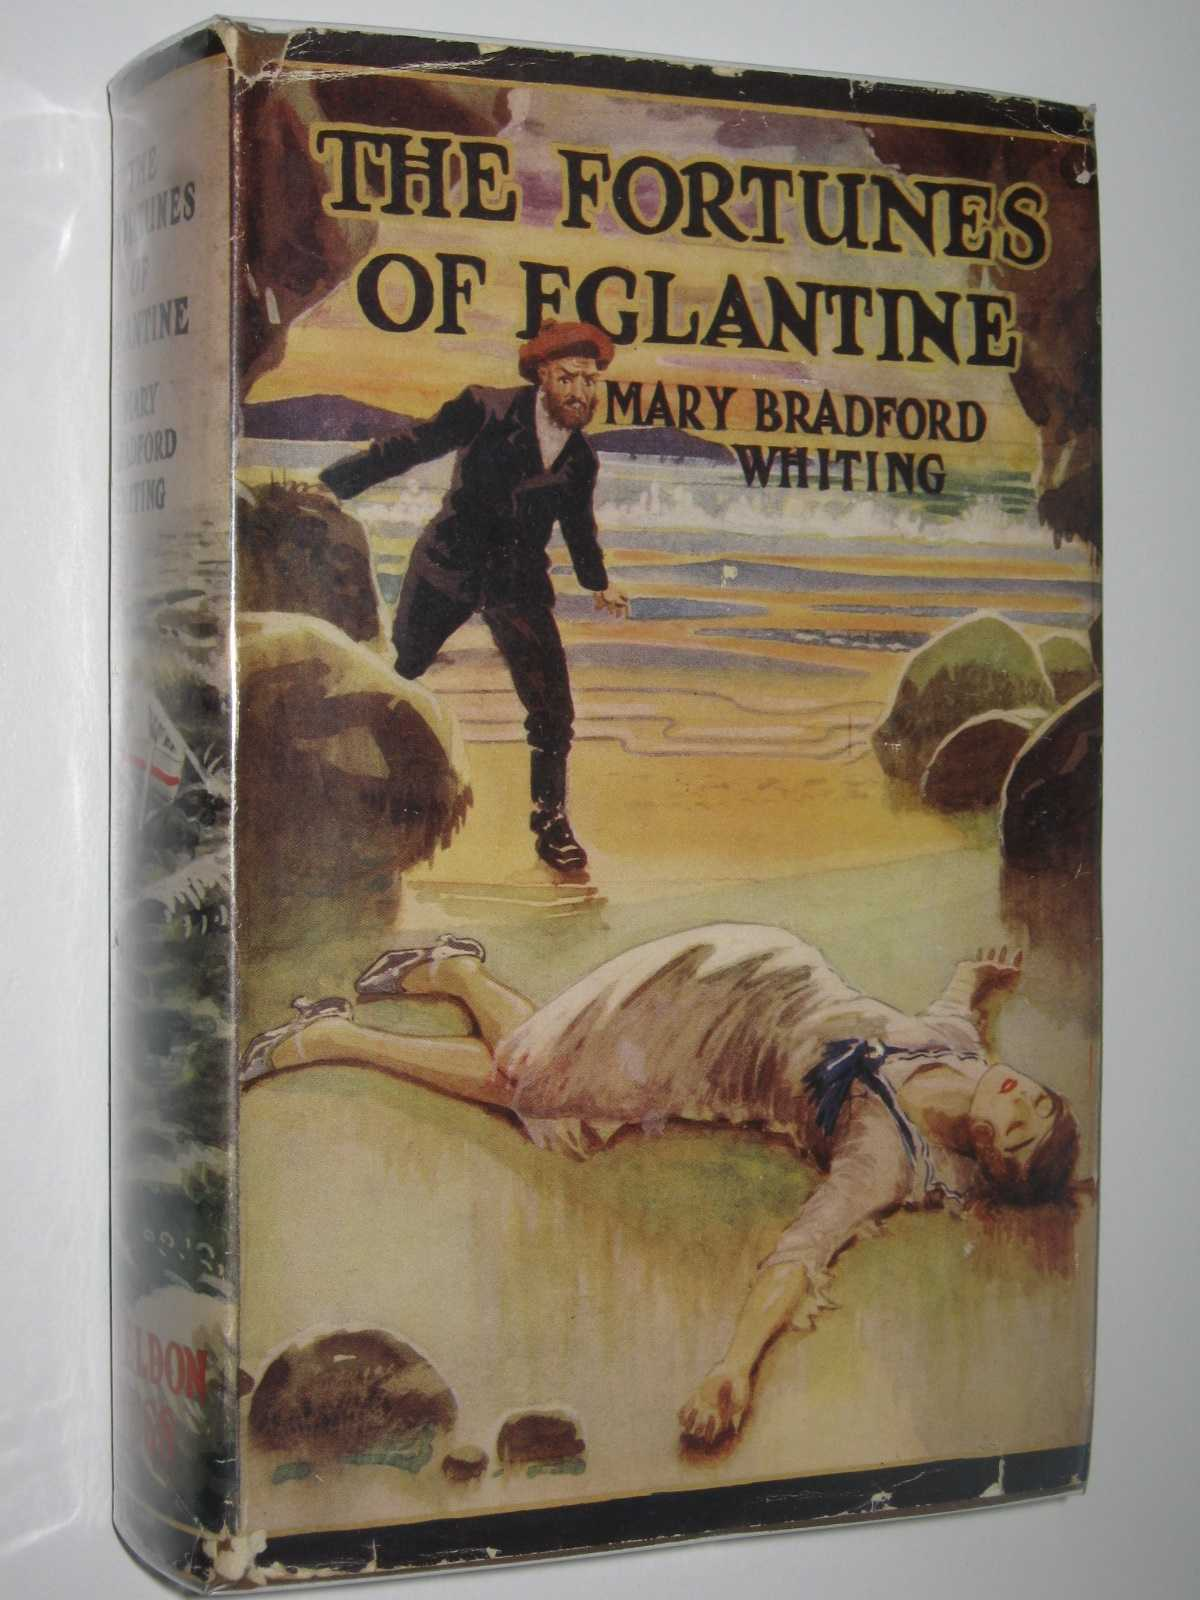 The Fortunes of Eglantine, Whiting, Mary Bradford